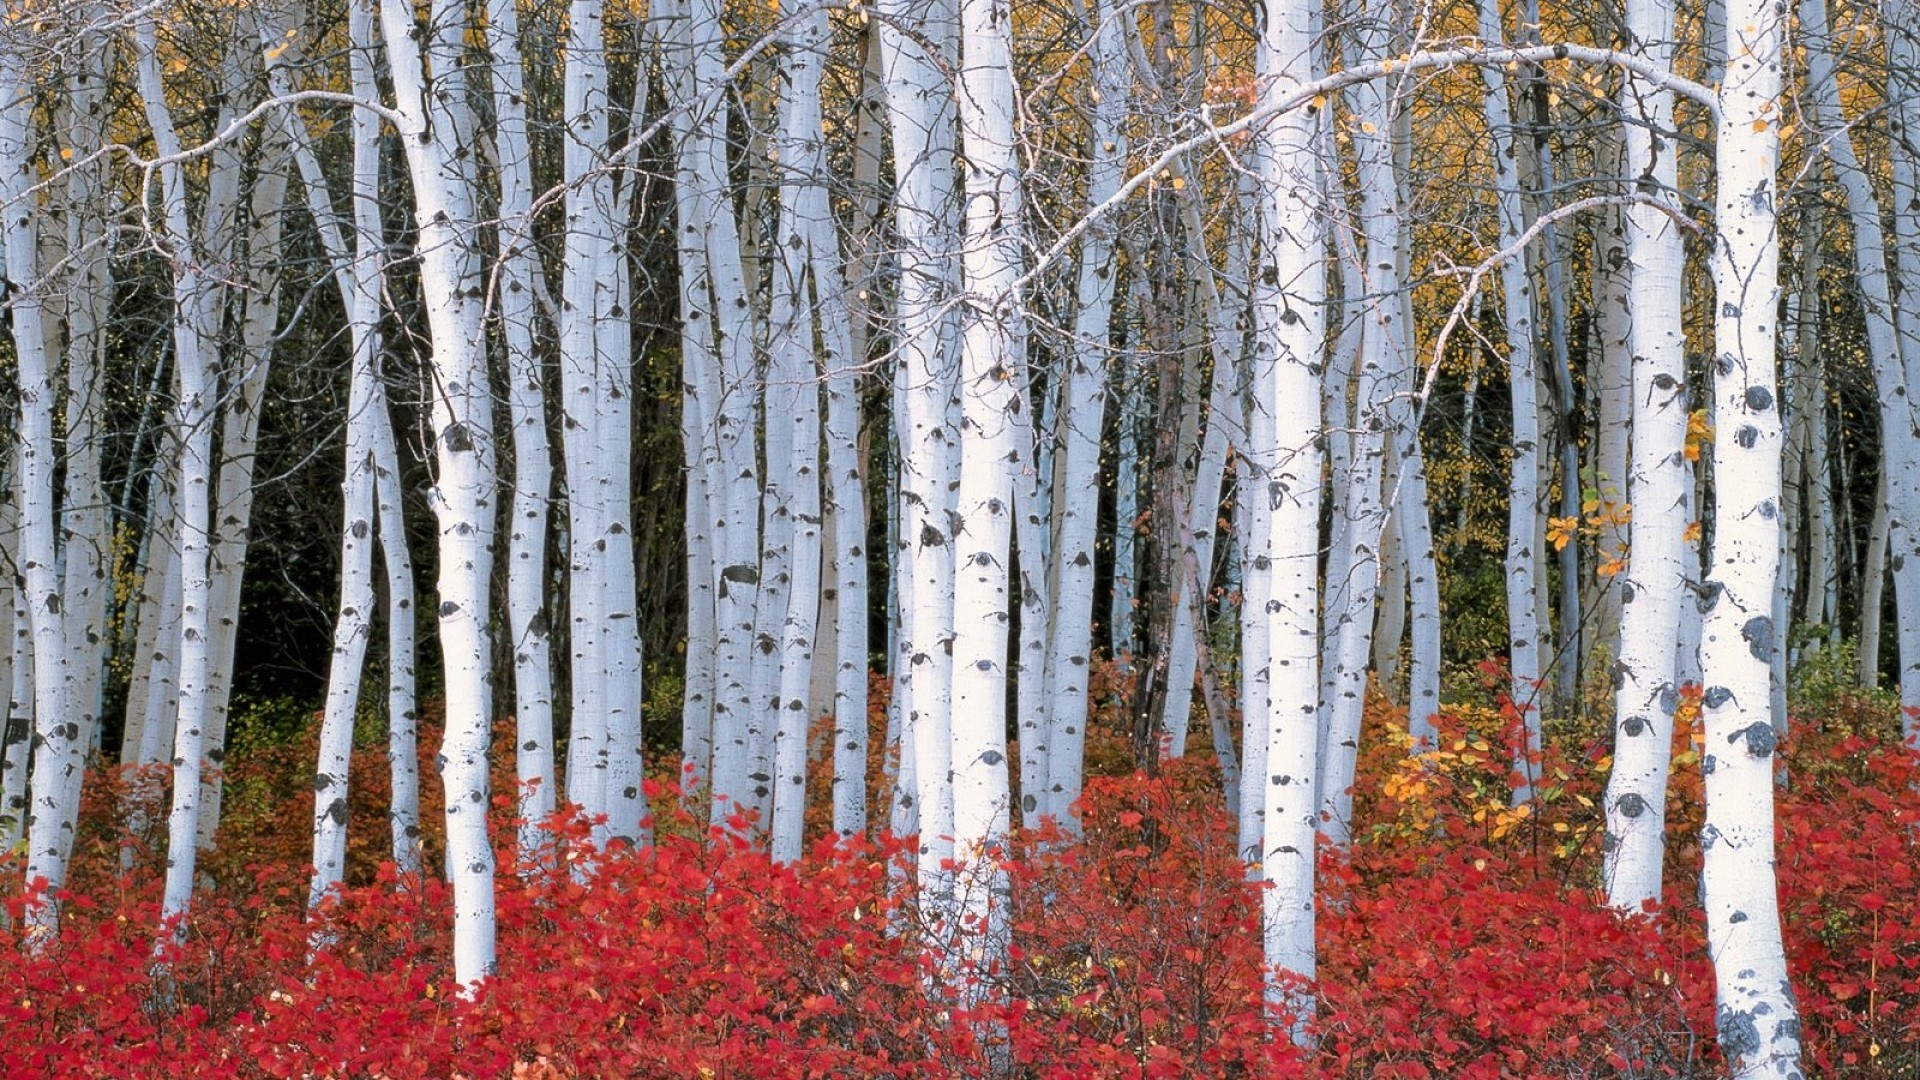 Preferred Birch Tree wallpaper ·① Download free awesome HD backgrounds for  XB63